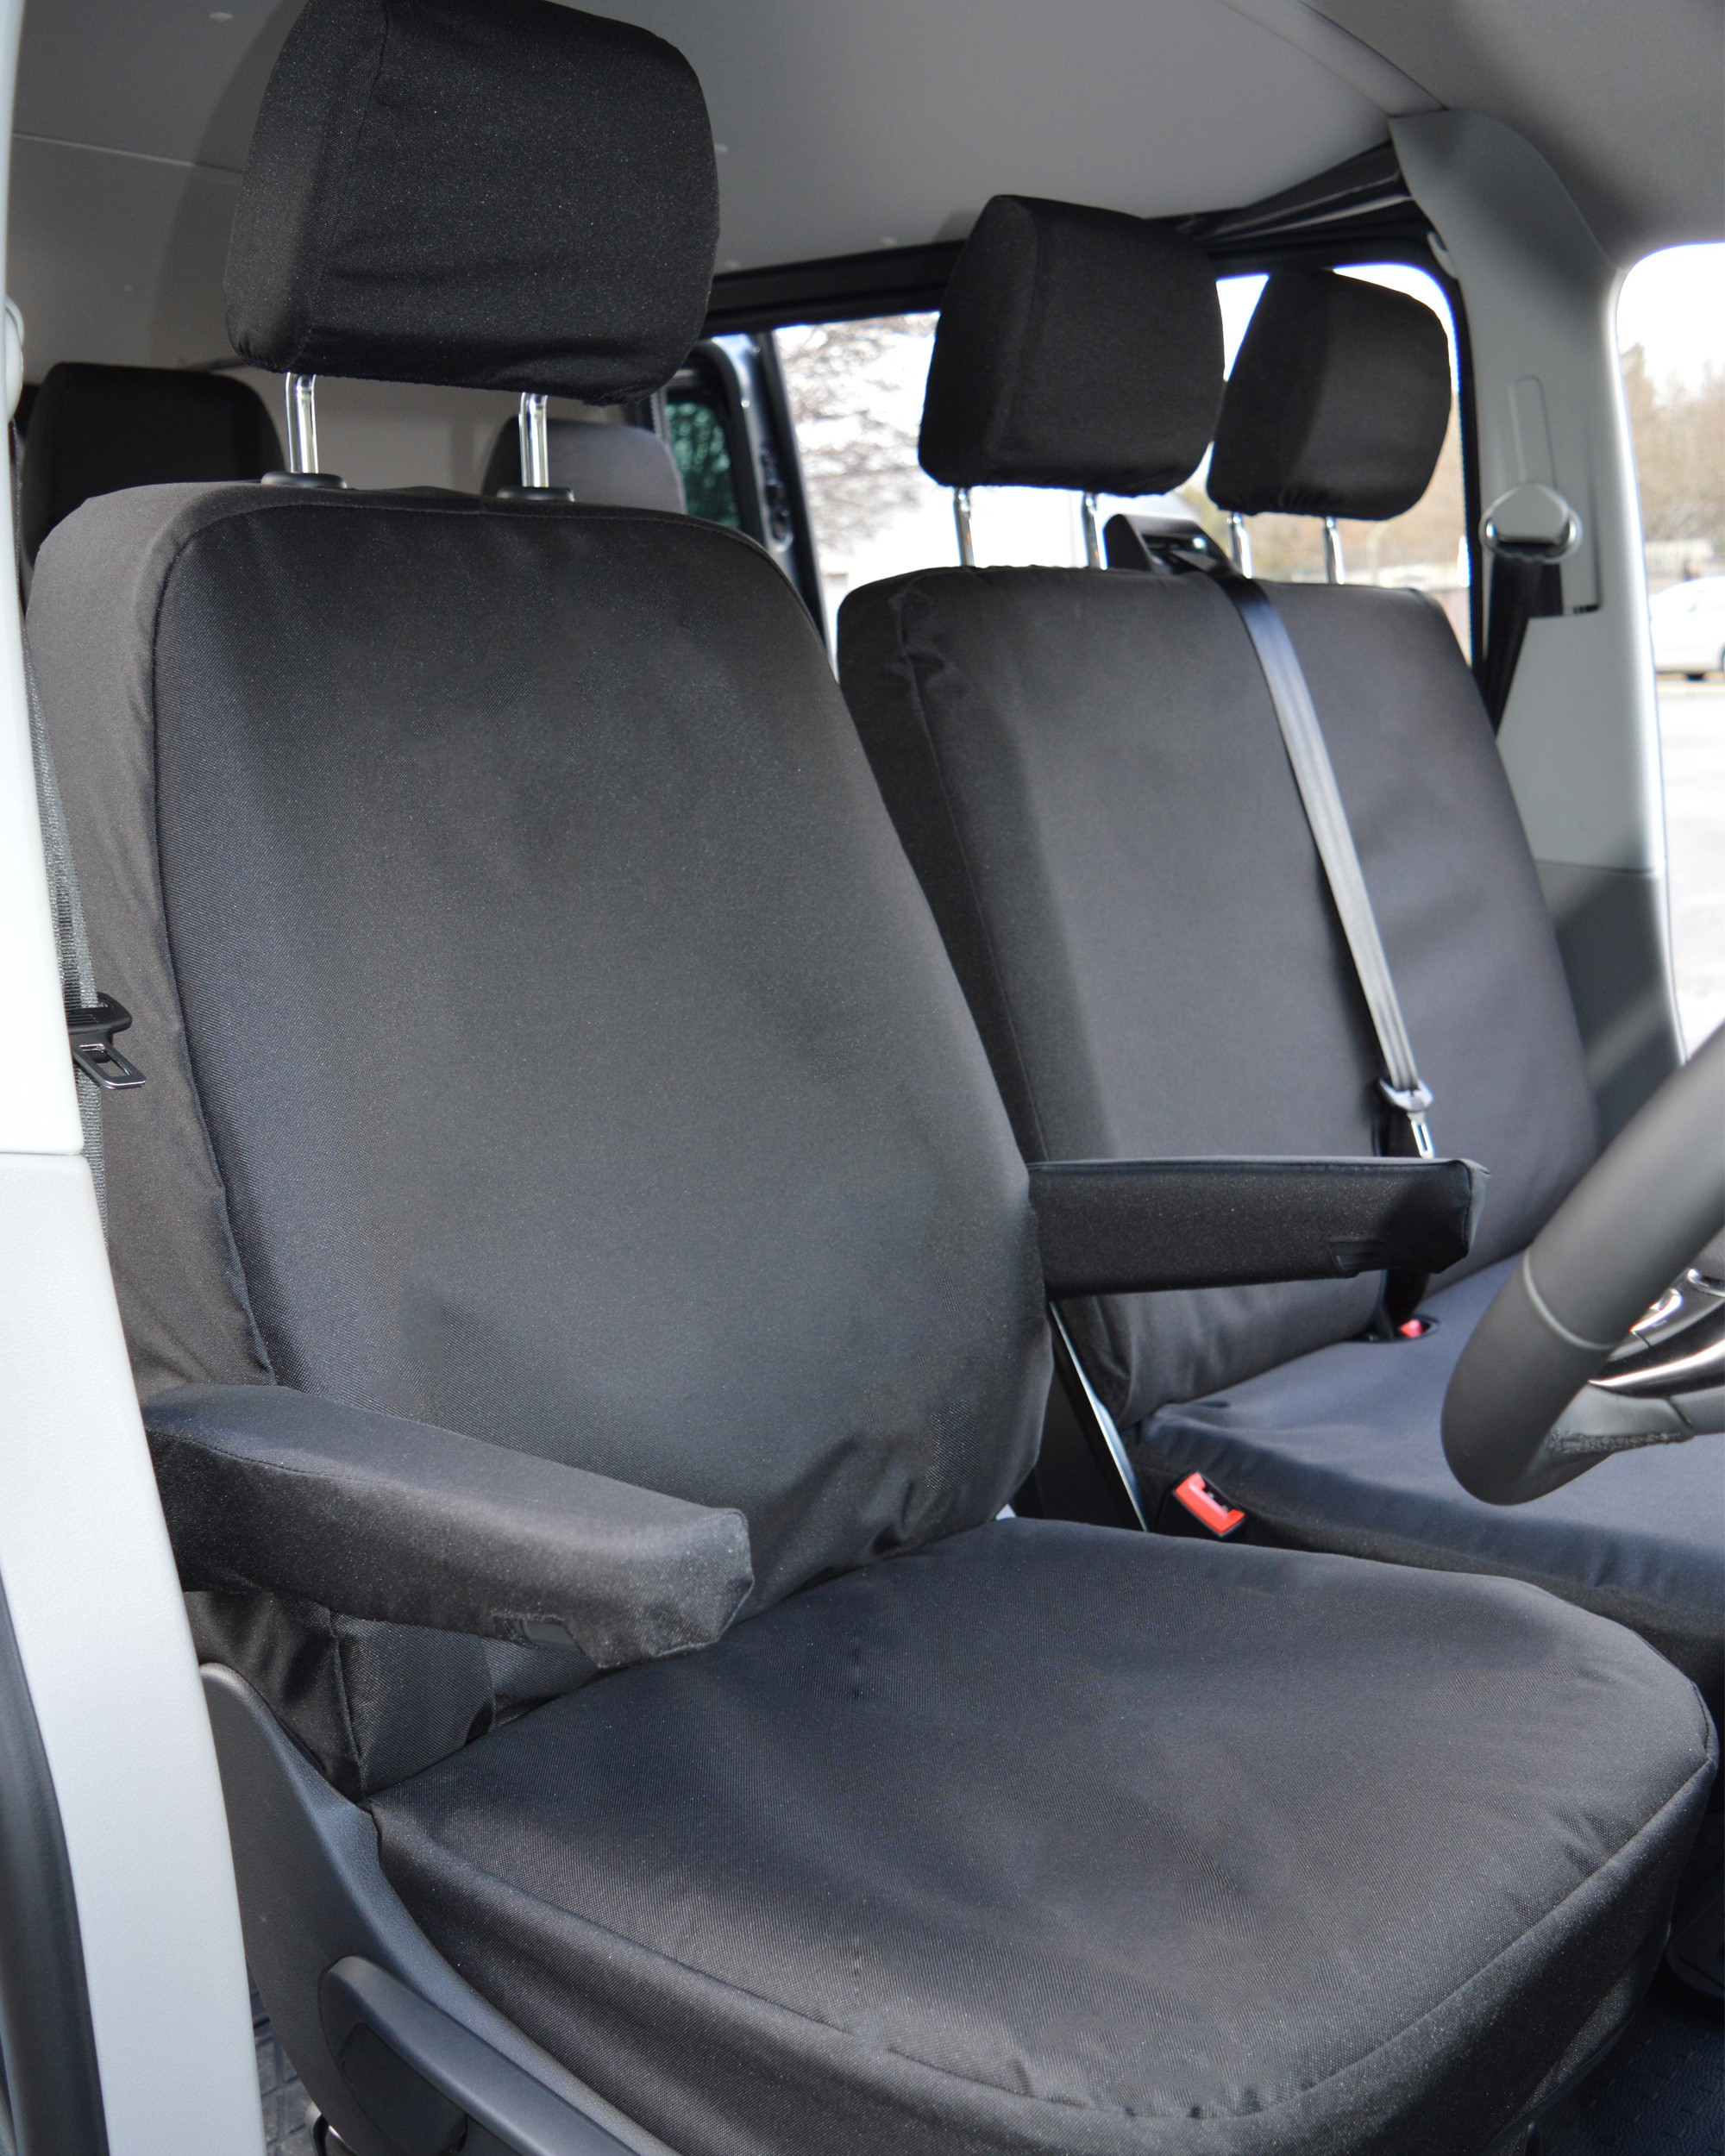 VW Transporter extra heavy duty seat cover